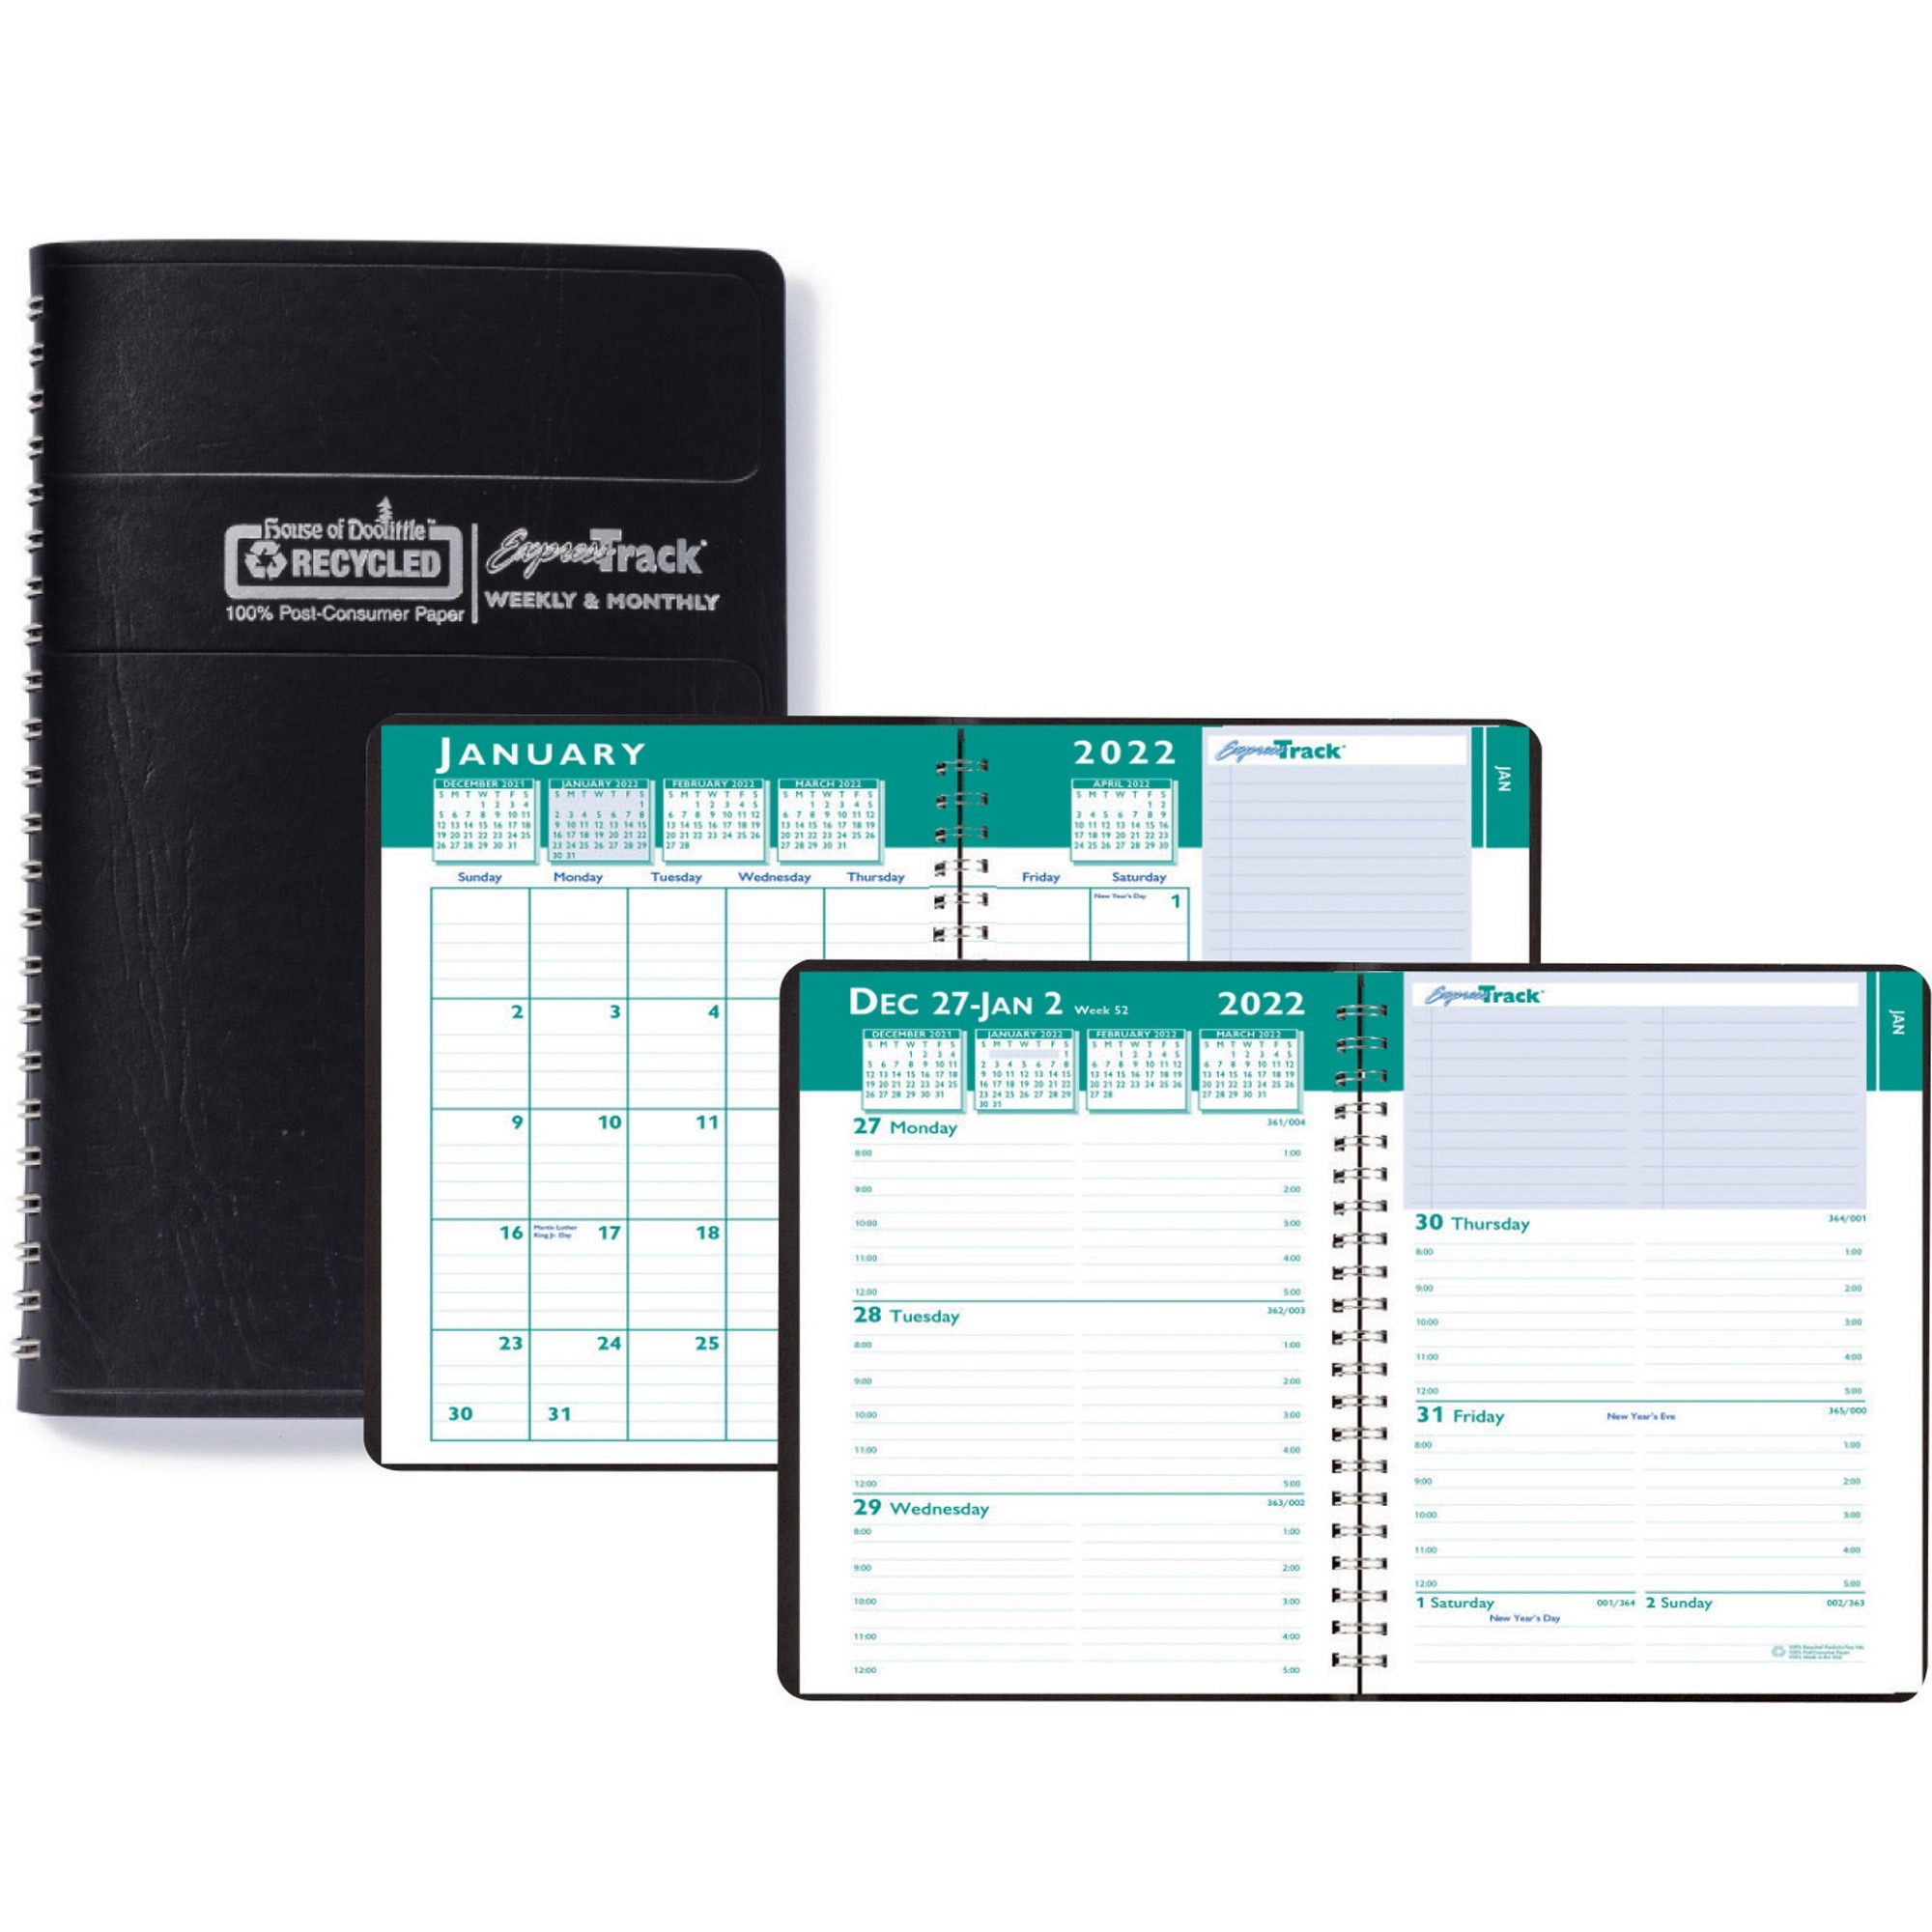 House of Doolittle Express Track Small Weekly/Monthly Calendar Planner - Yes - Weekly, Monthly - 1.1 Year - January 2020 till January 2021 - 8:00 AM to 5:00 PM - 1 Week, 1 Month Double Page Layout - 5